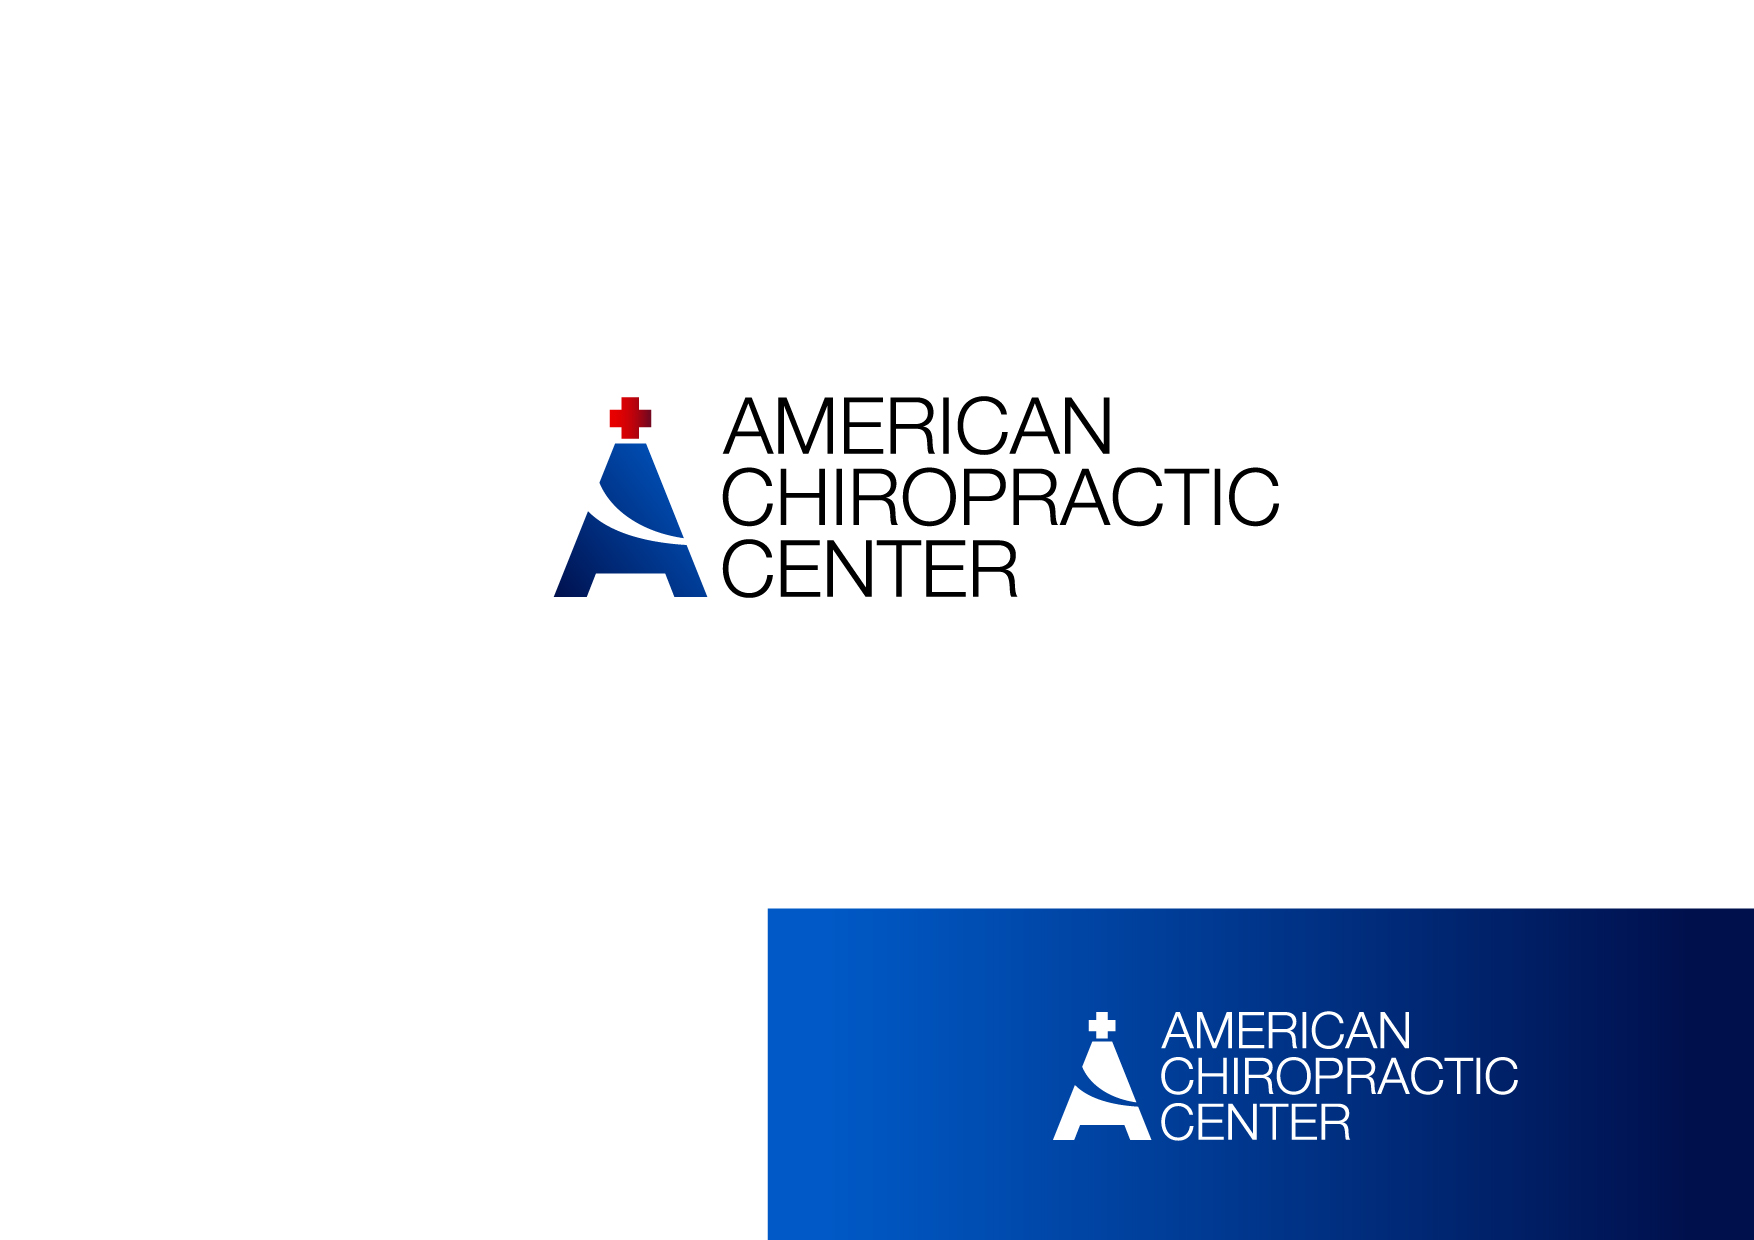 Logo Design by Osi Indra - Entry No. 59 in the Logo Design Contest Logo Design for American Chiropractic Center.